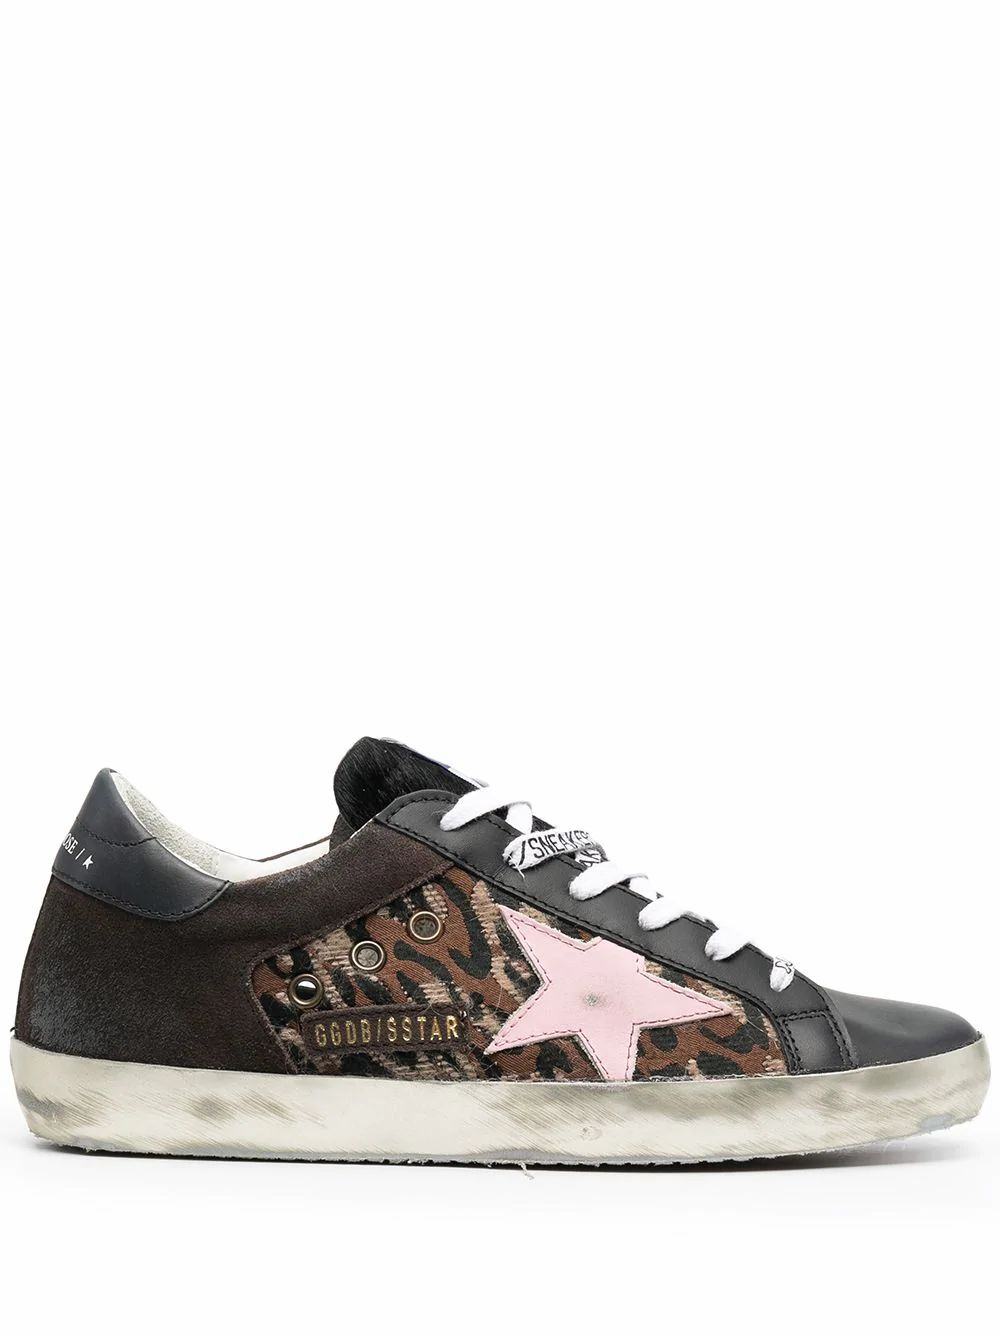 Golden Goose Leathers GOLDEN GOOSE WOMEN'S GWF00103F00019380127 BLACK LEATHER SNEAKERS